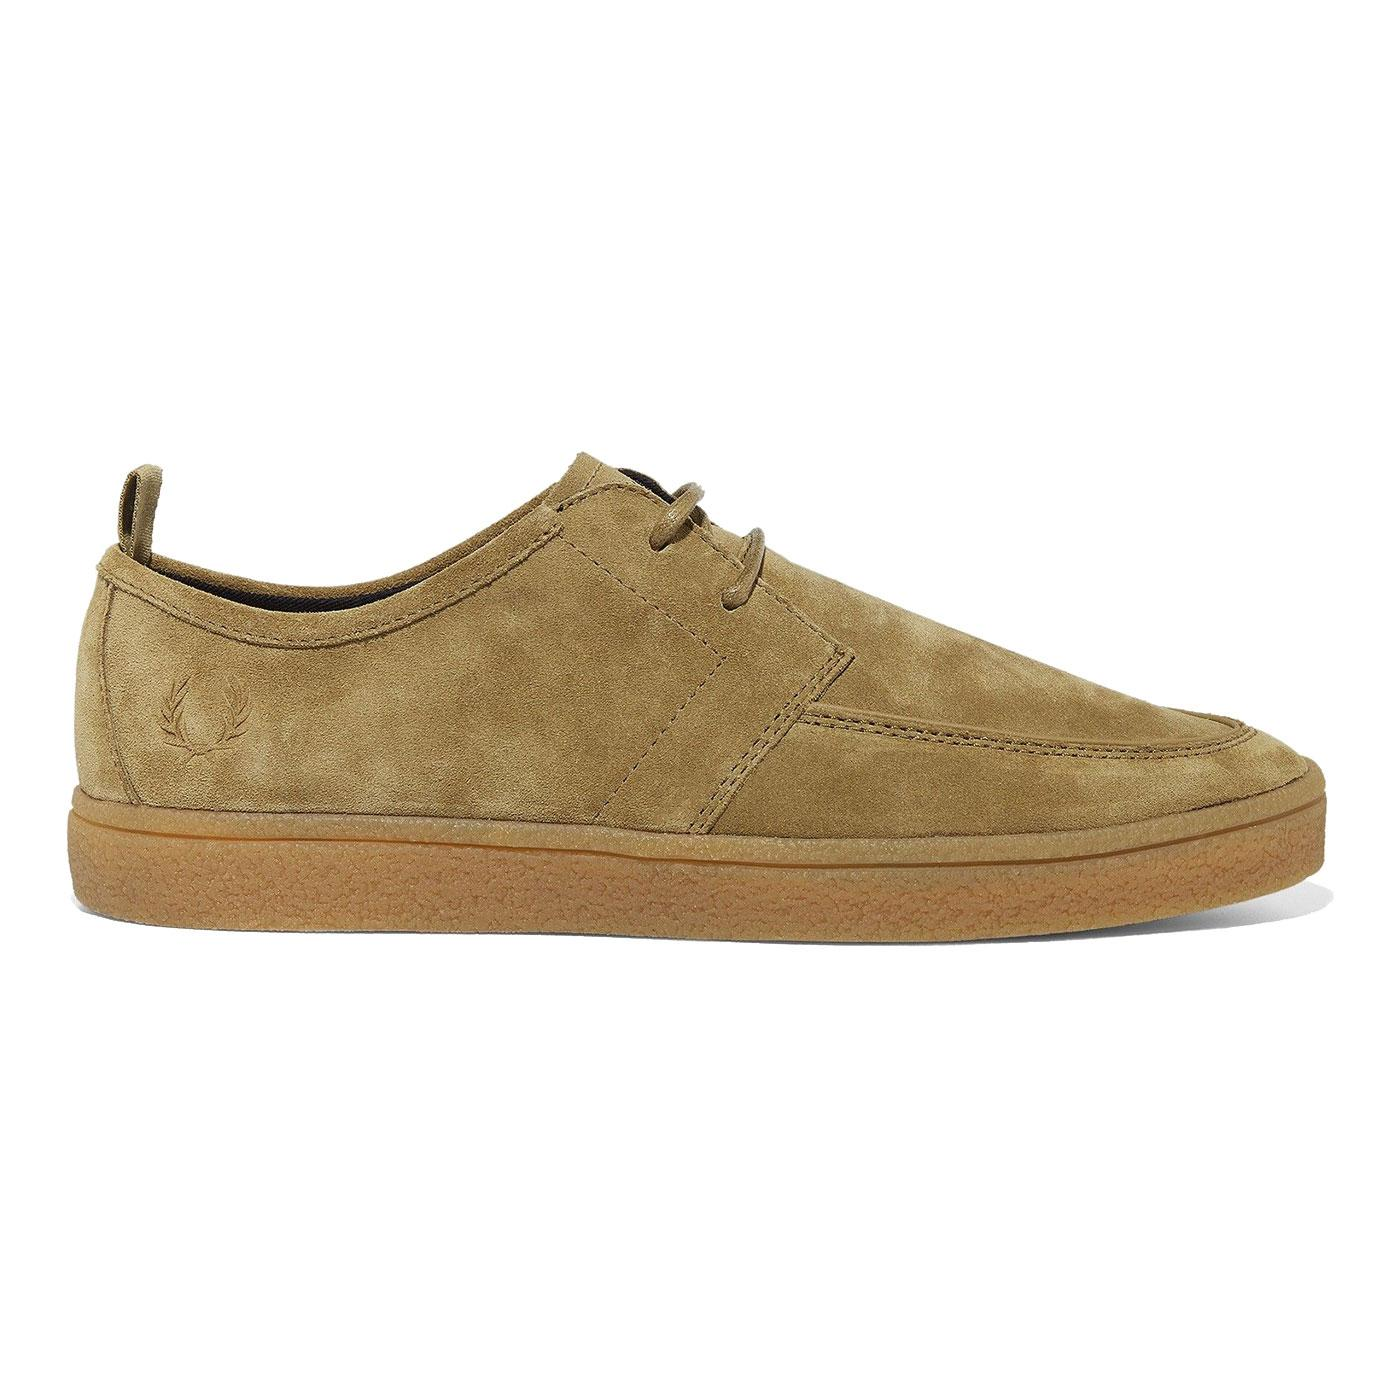 Shield FRED PERRY Retro Suede Crepe Sole Trainers